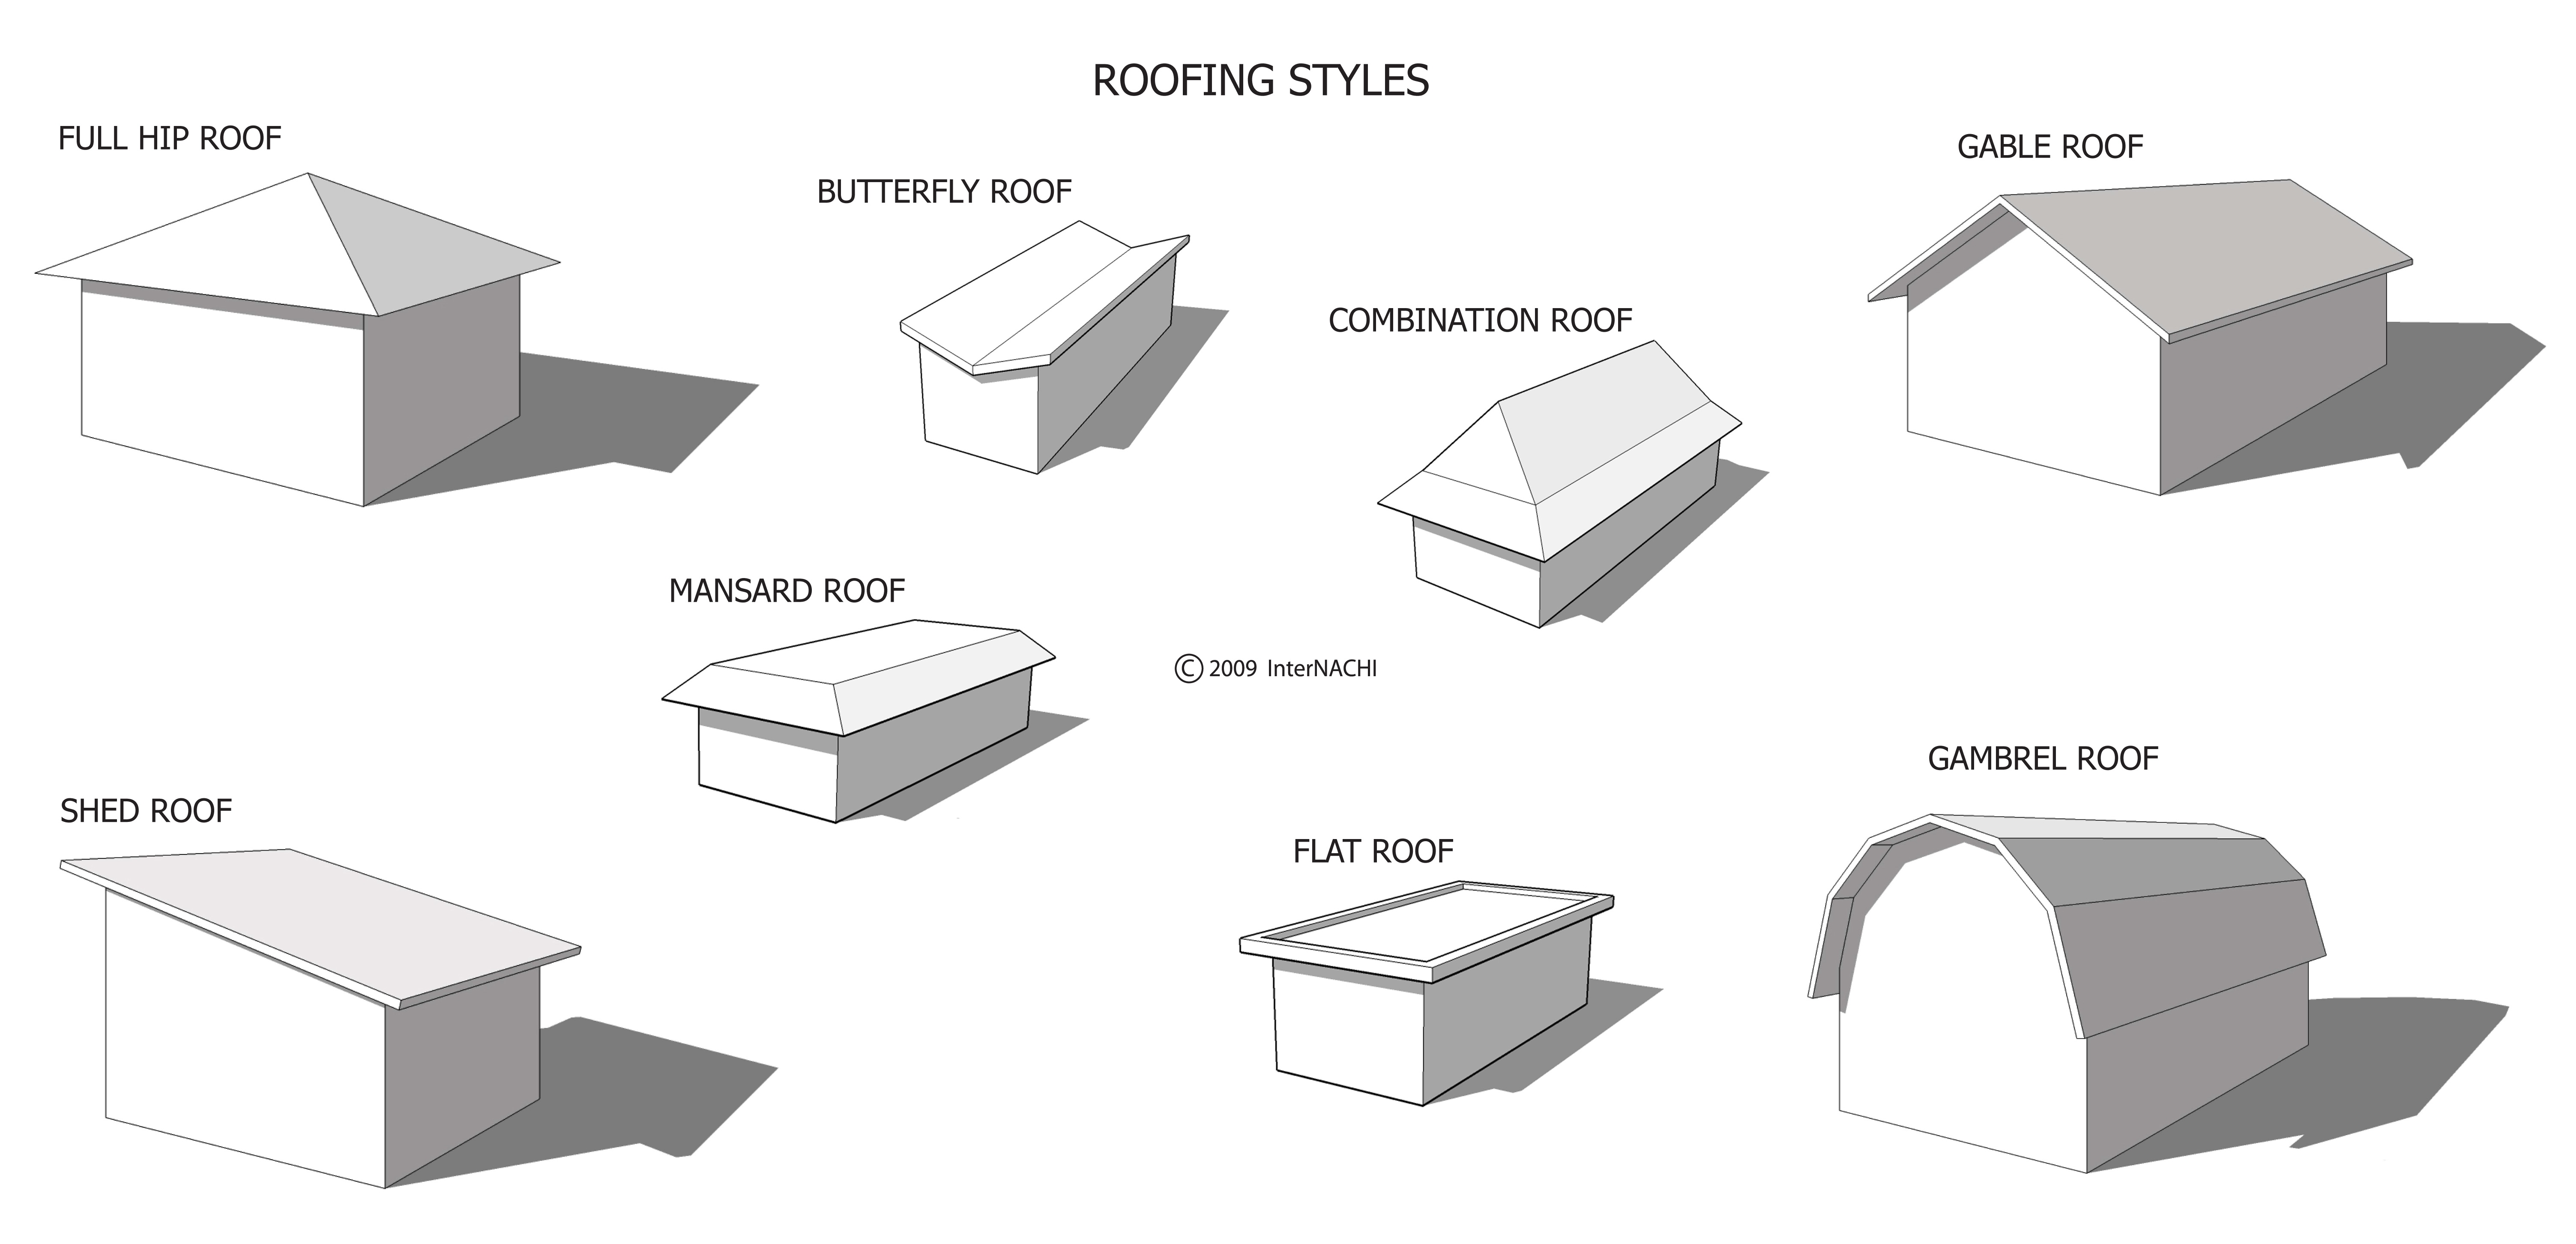 Index Of Gallery Images Roofing General